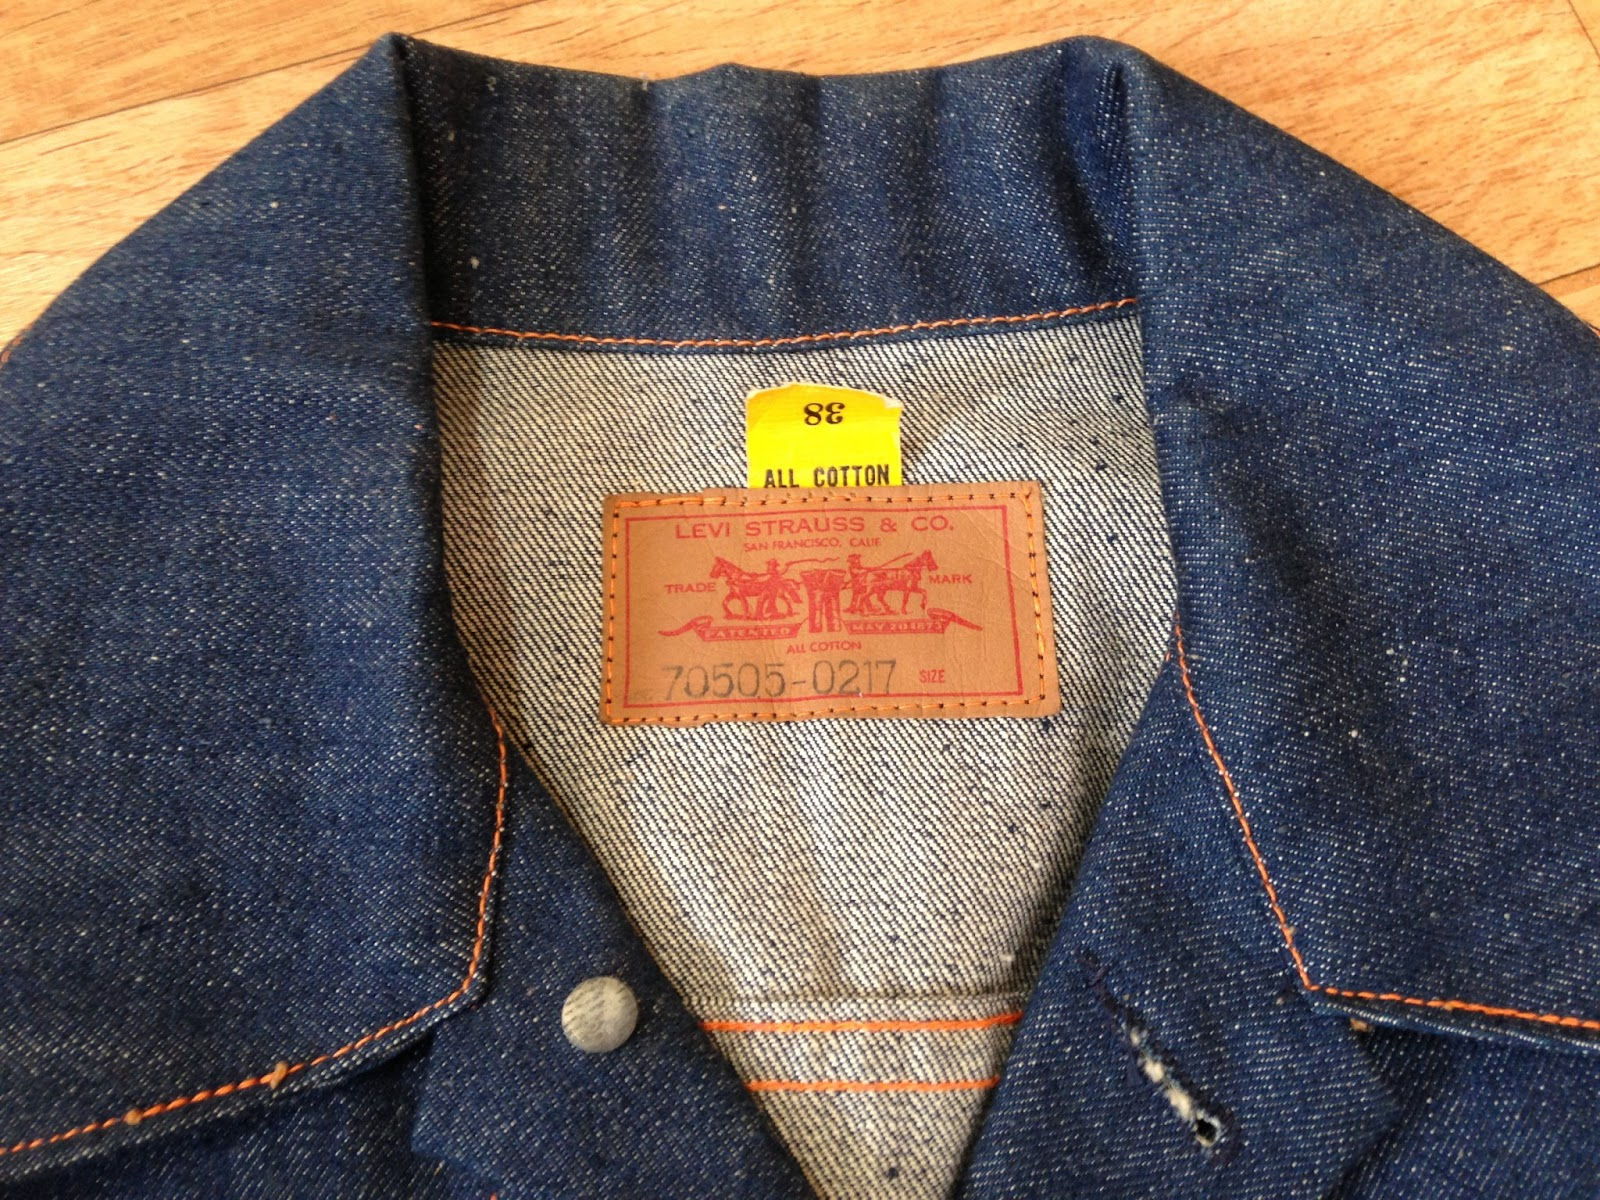 old ones, and the first ones: Levi\'s big E 70505-0217 Type III ...